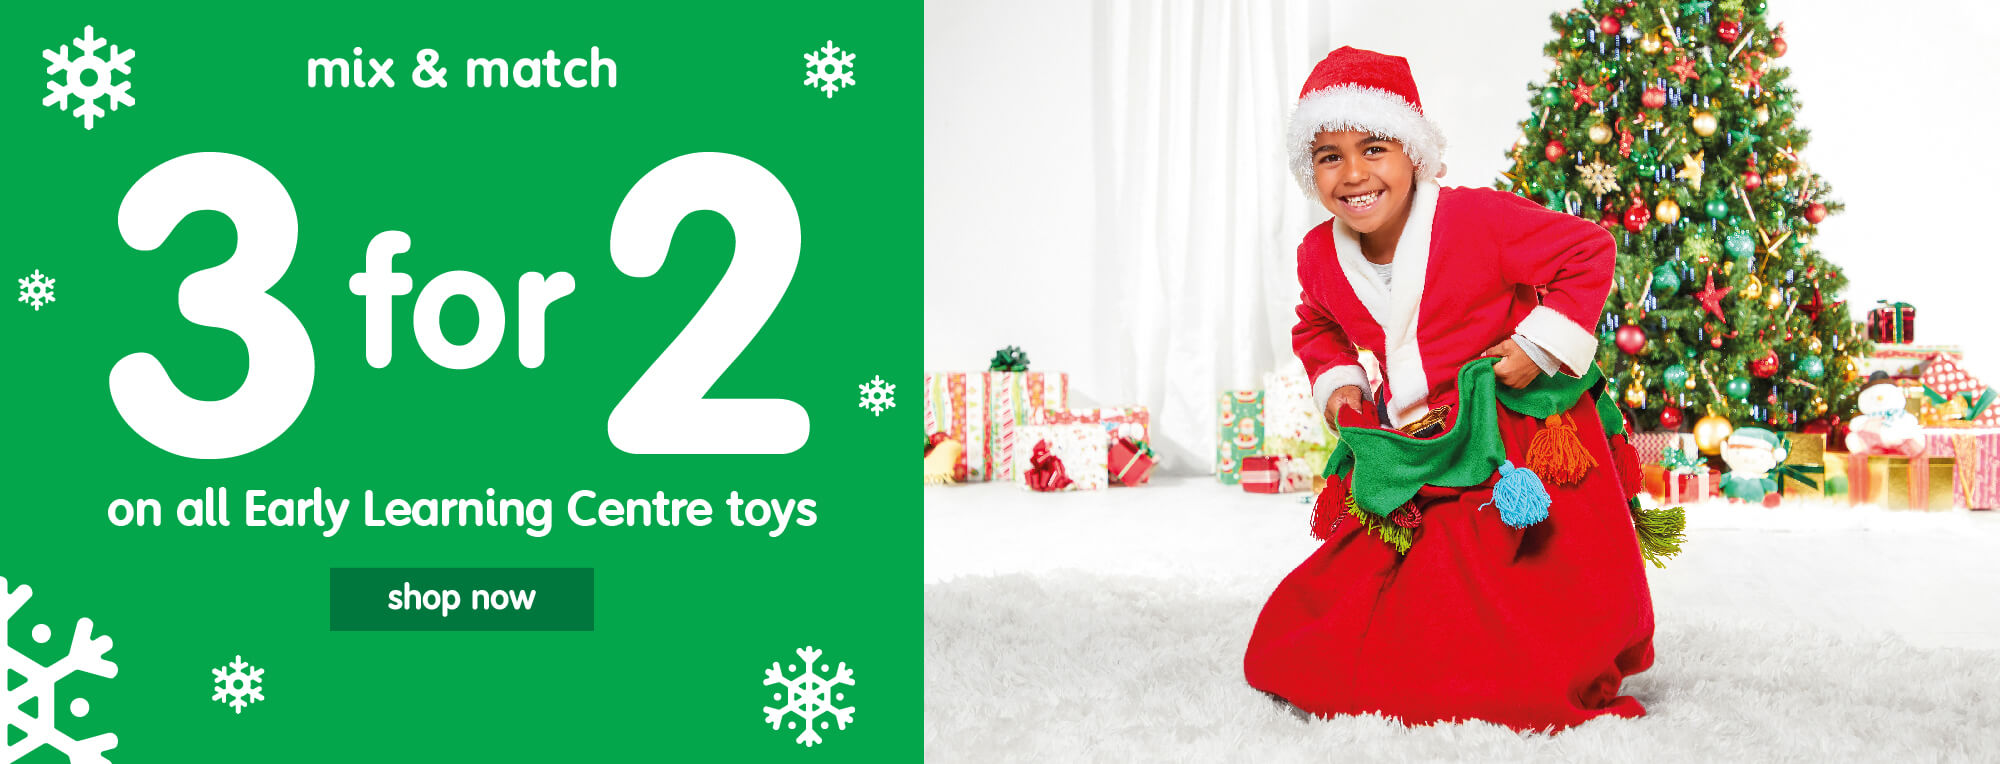 3 for 2 on hundreds of toys at ELC